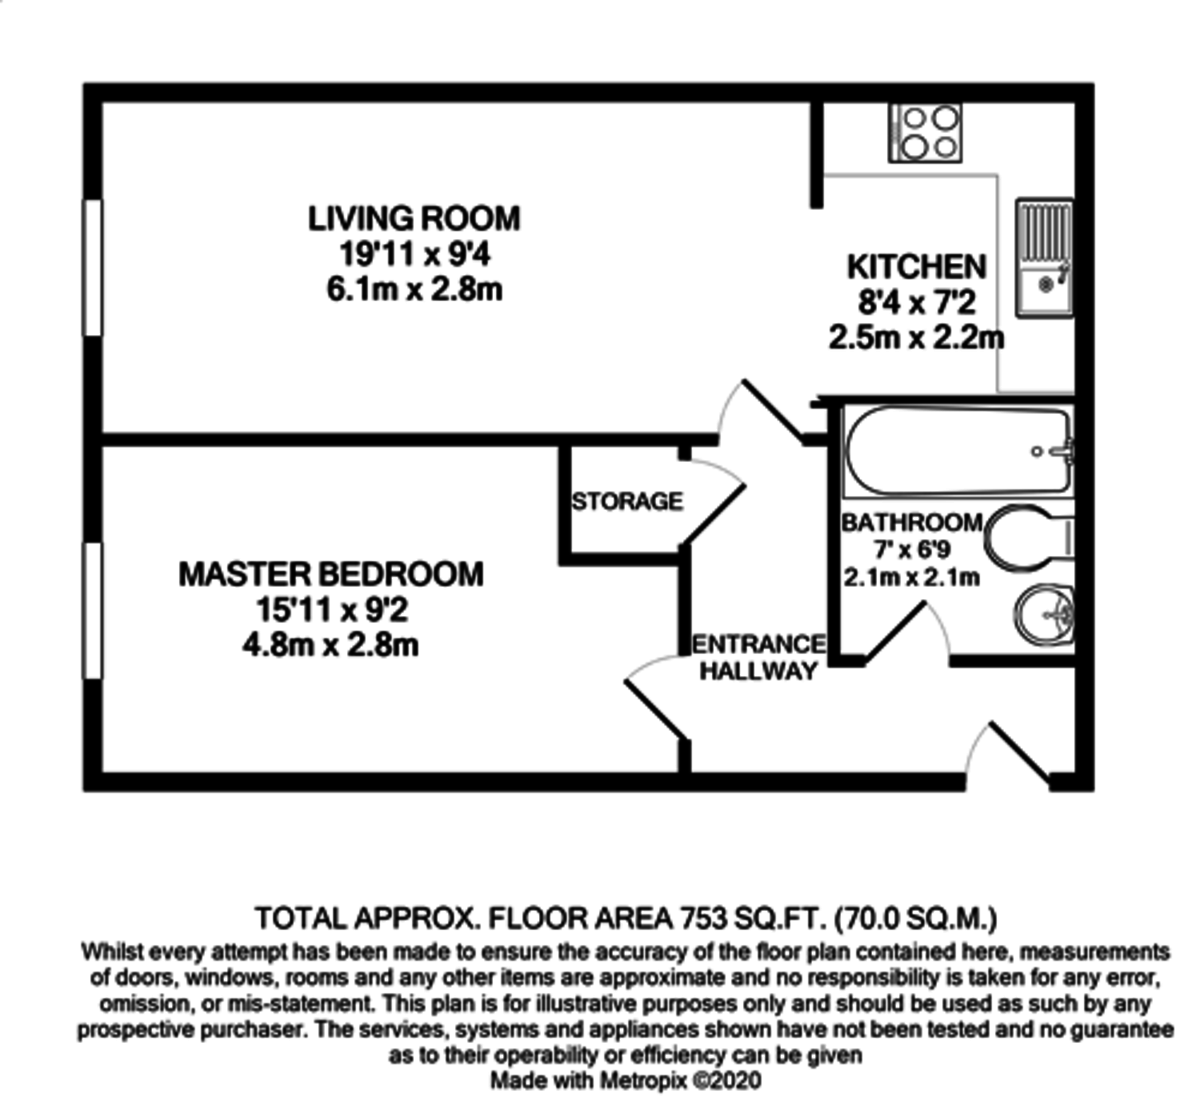 Regal Court, 72 Bishopsgate Street, Birmingham City Centre floorplan 1 of 1